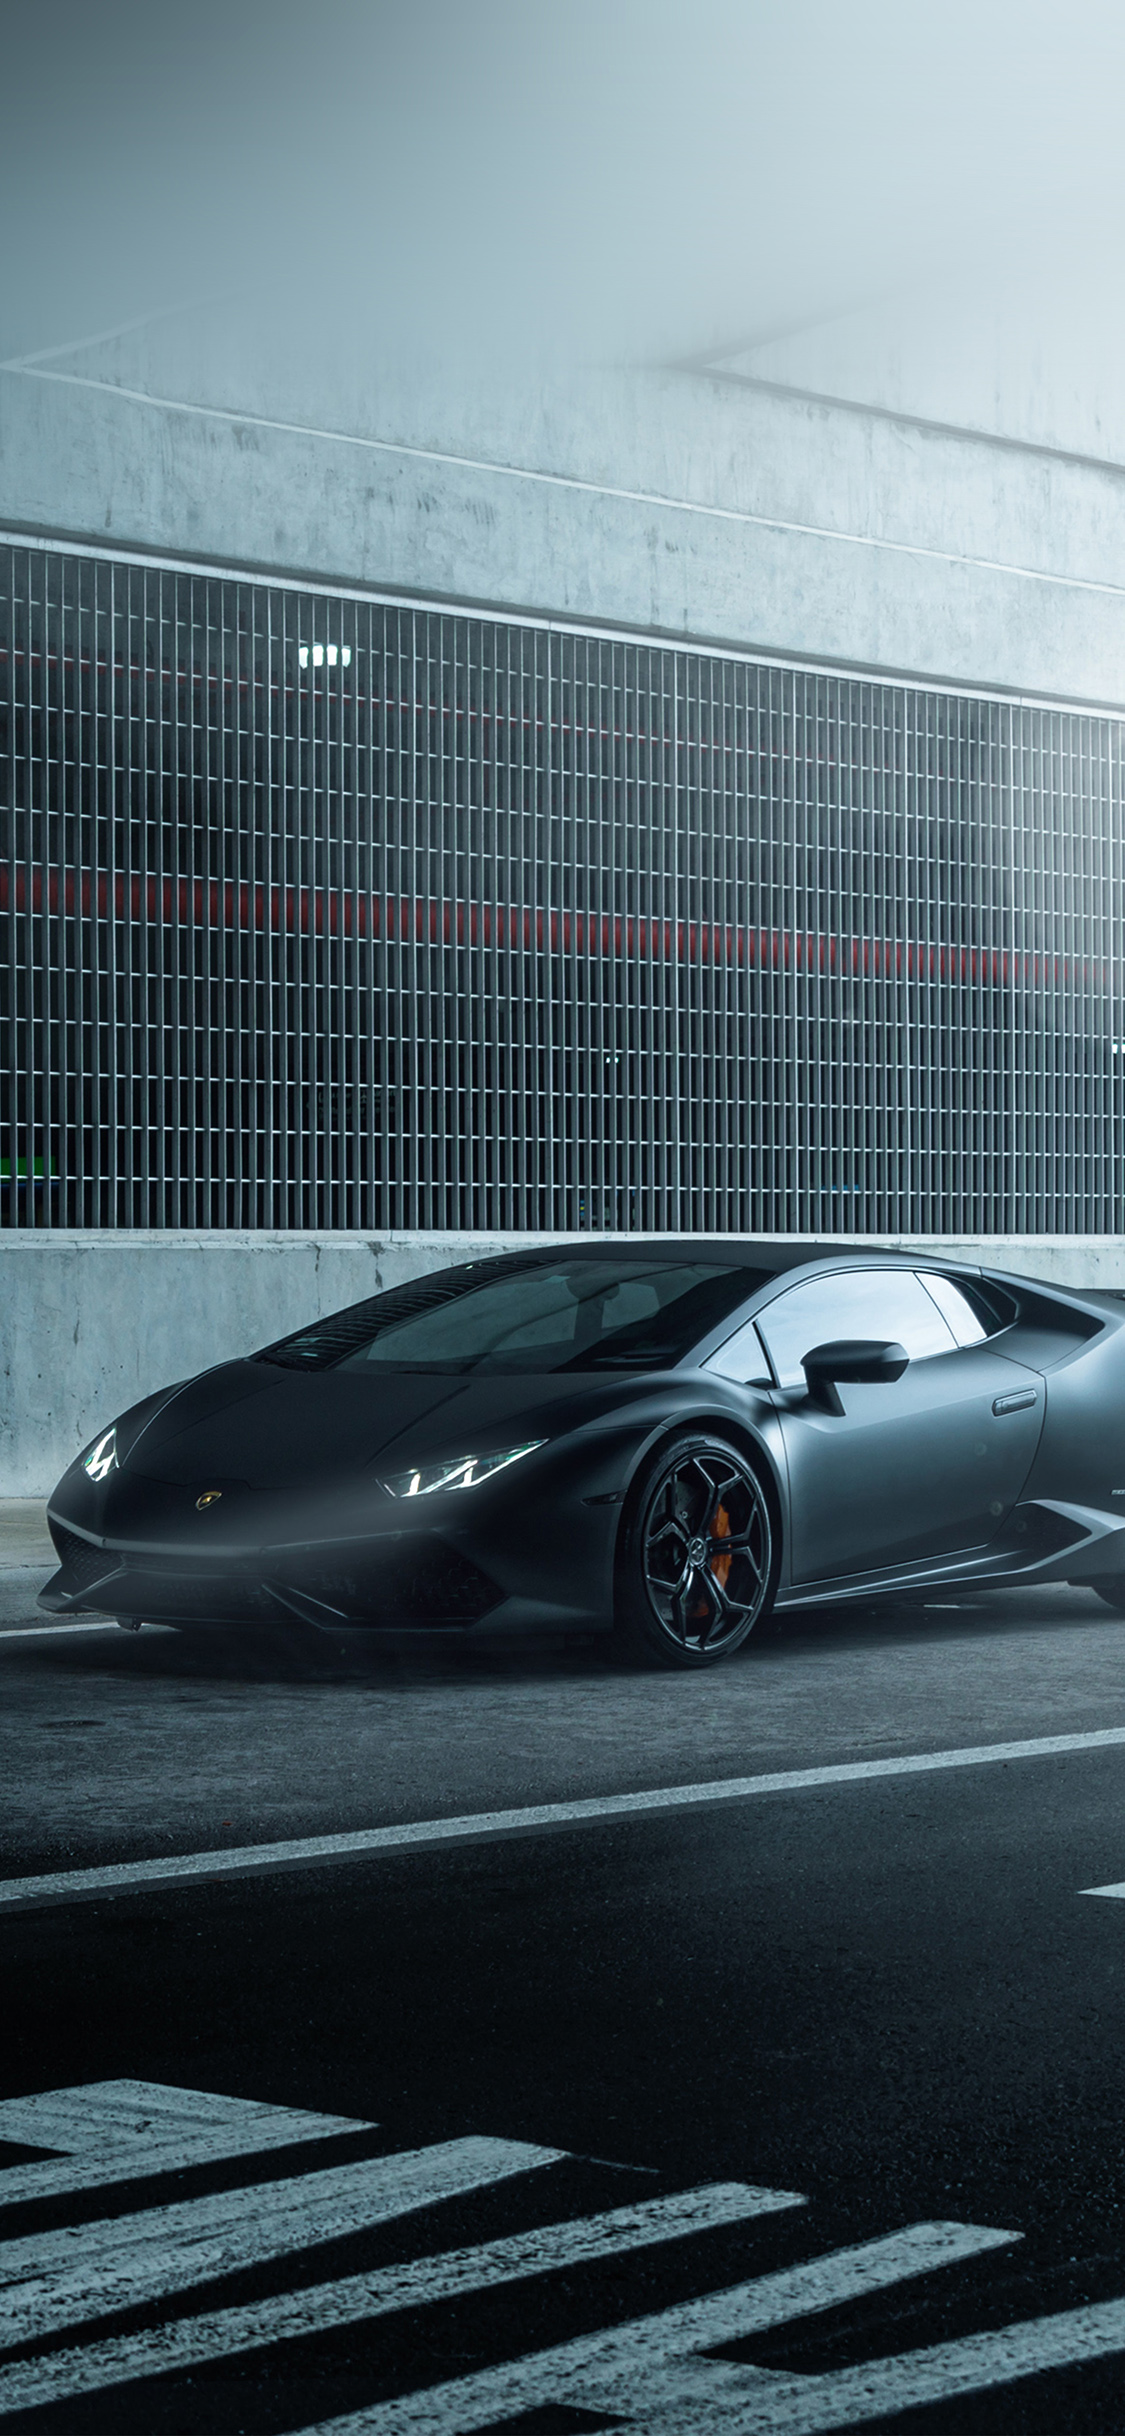 Iphonexpapers Com Iphone X Wallpaper Aq49 Lamborghini Huracan